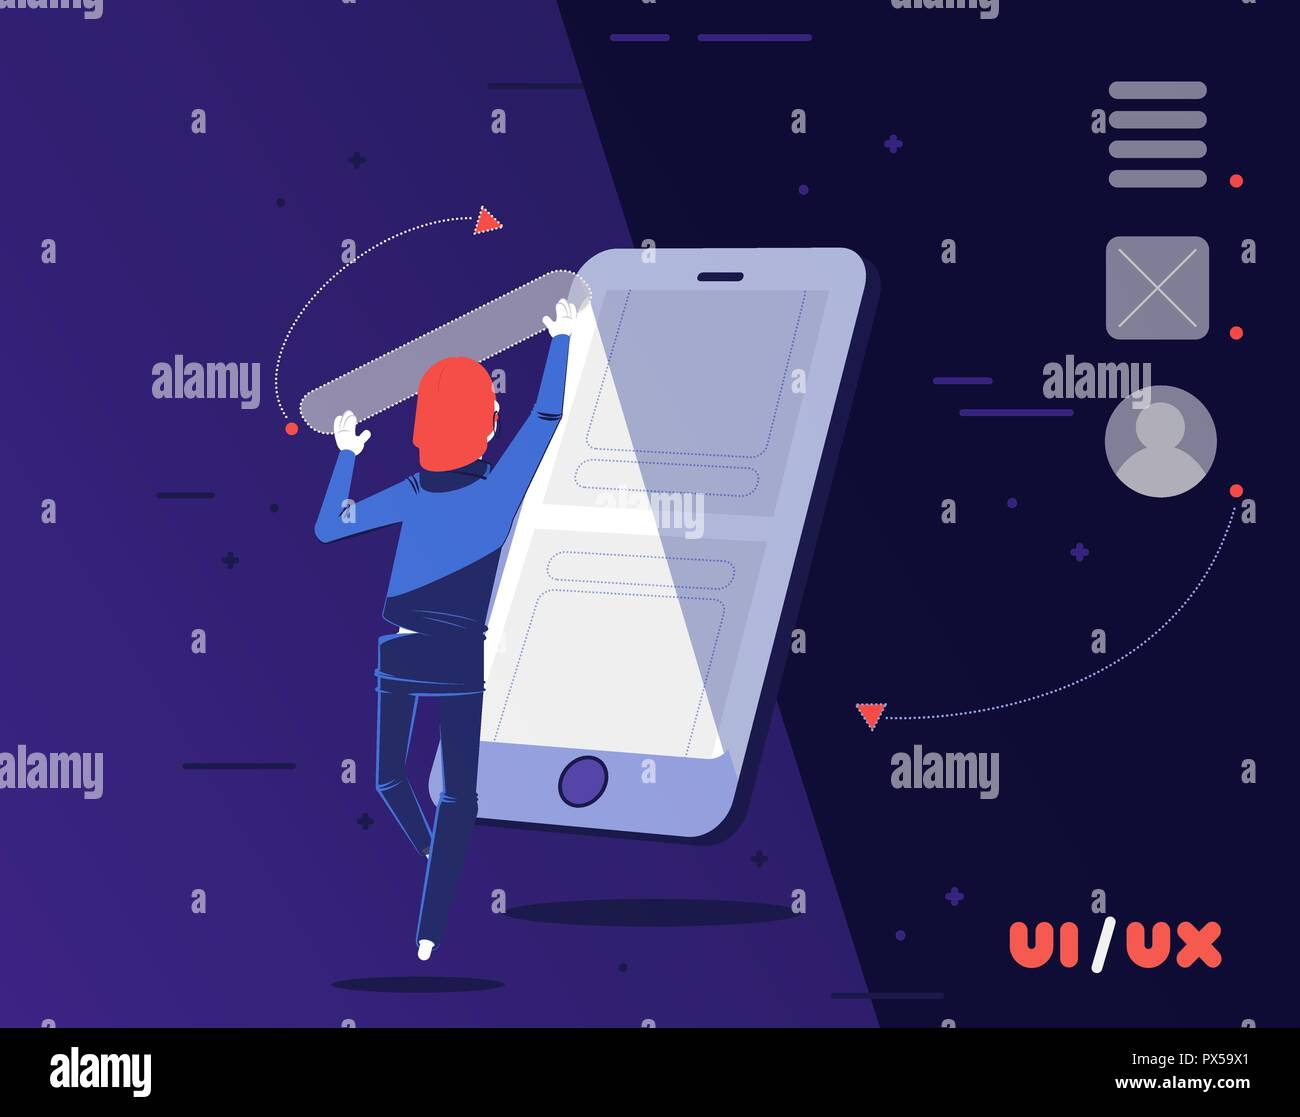 UI/UX designer building a new App for smartphone. In a digital world the user experience / interface designer is the architect of our new world. - Stock Image